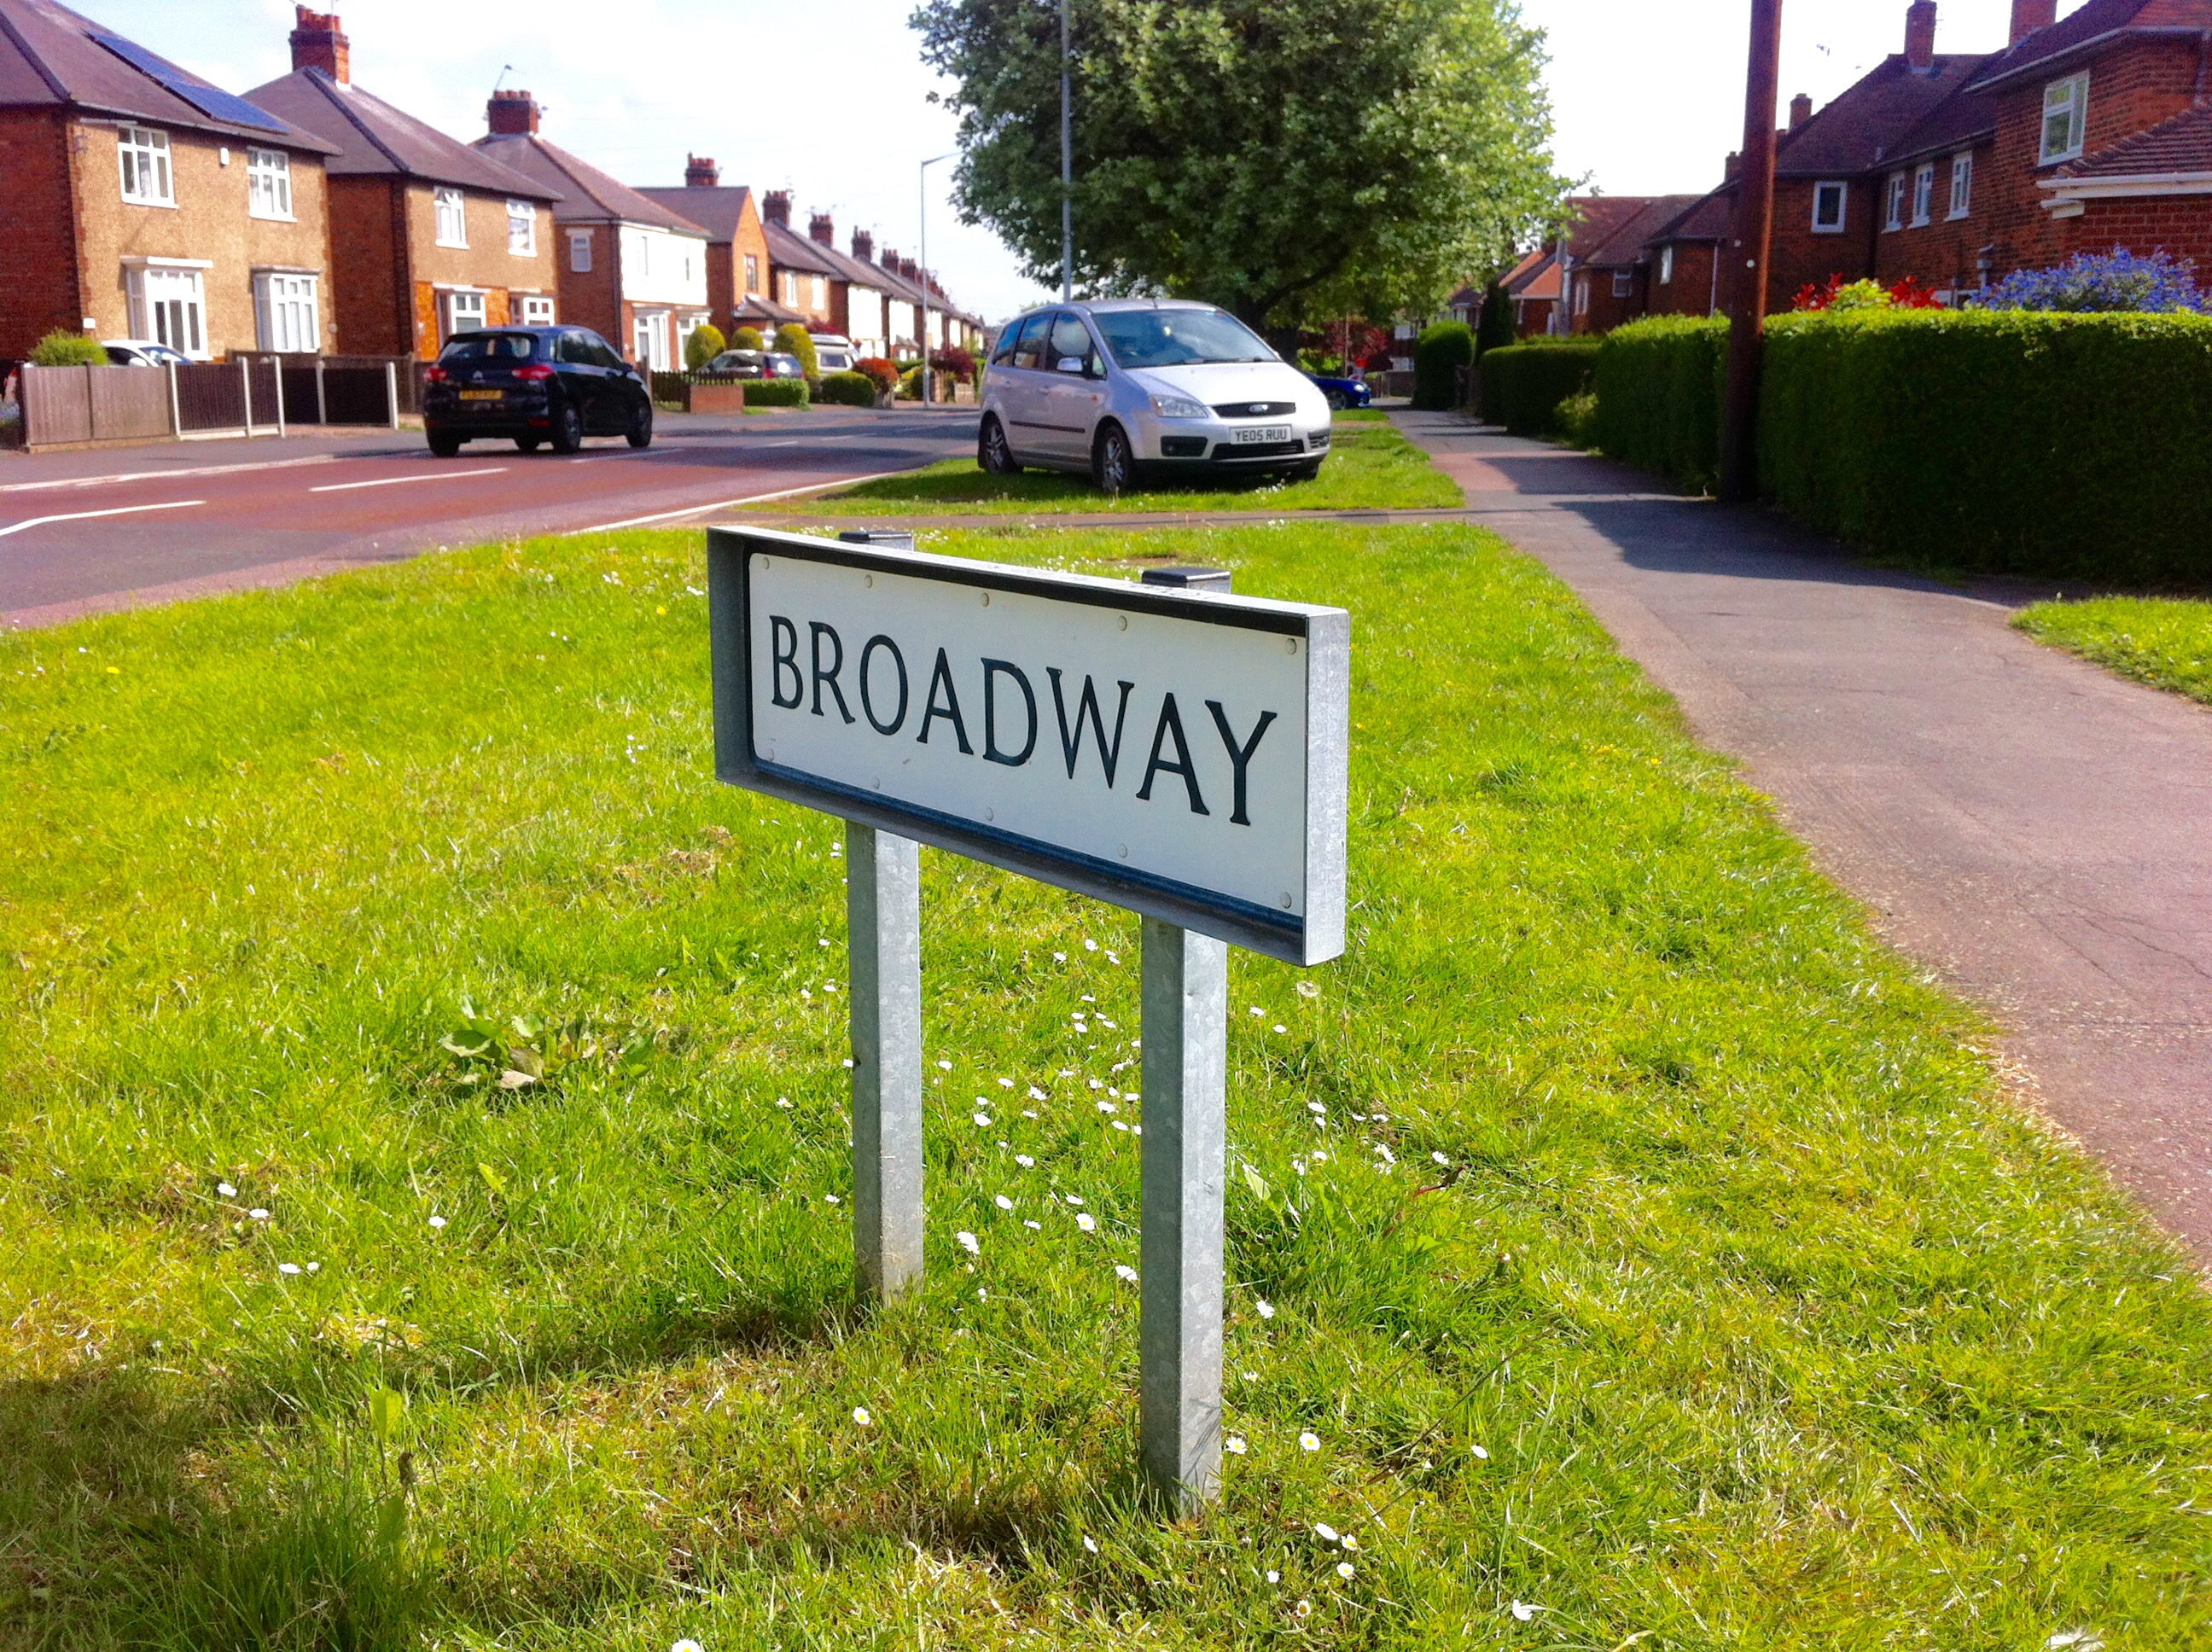 broadway loughborough 2016 Paul Conneally